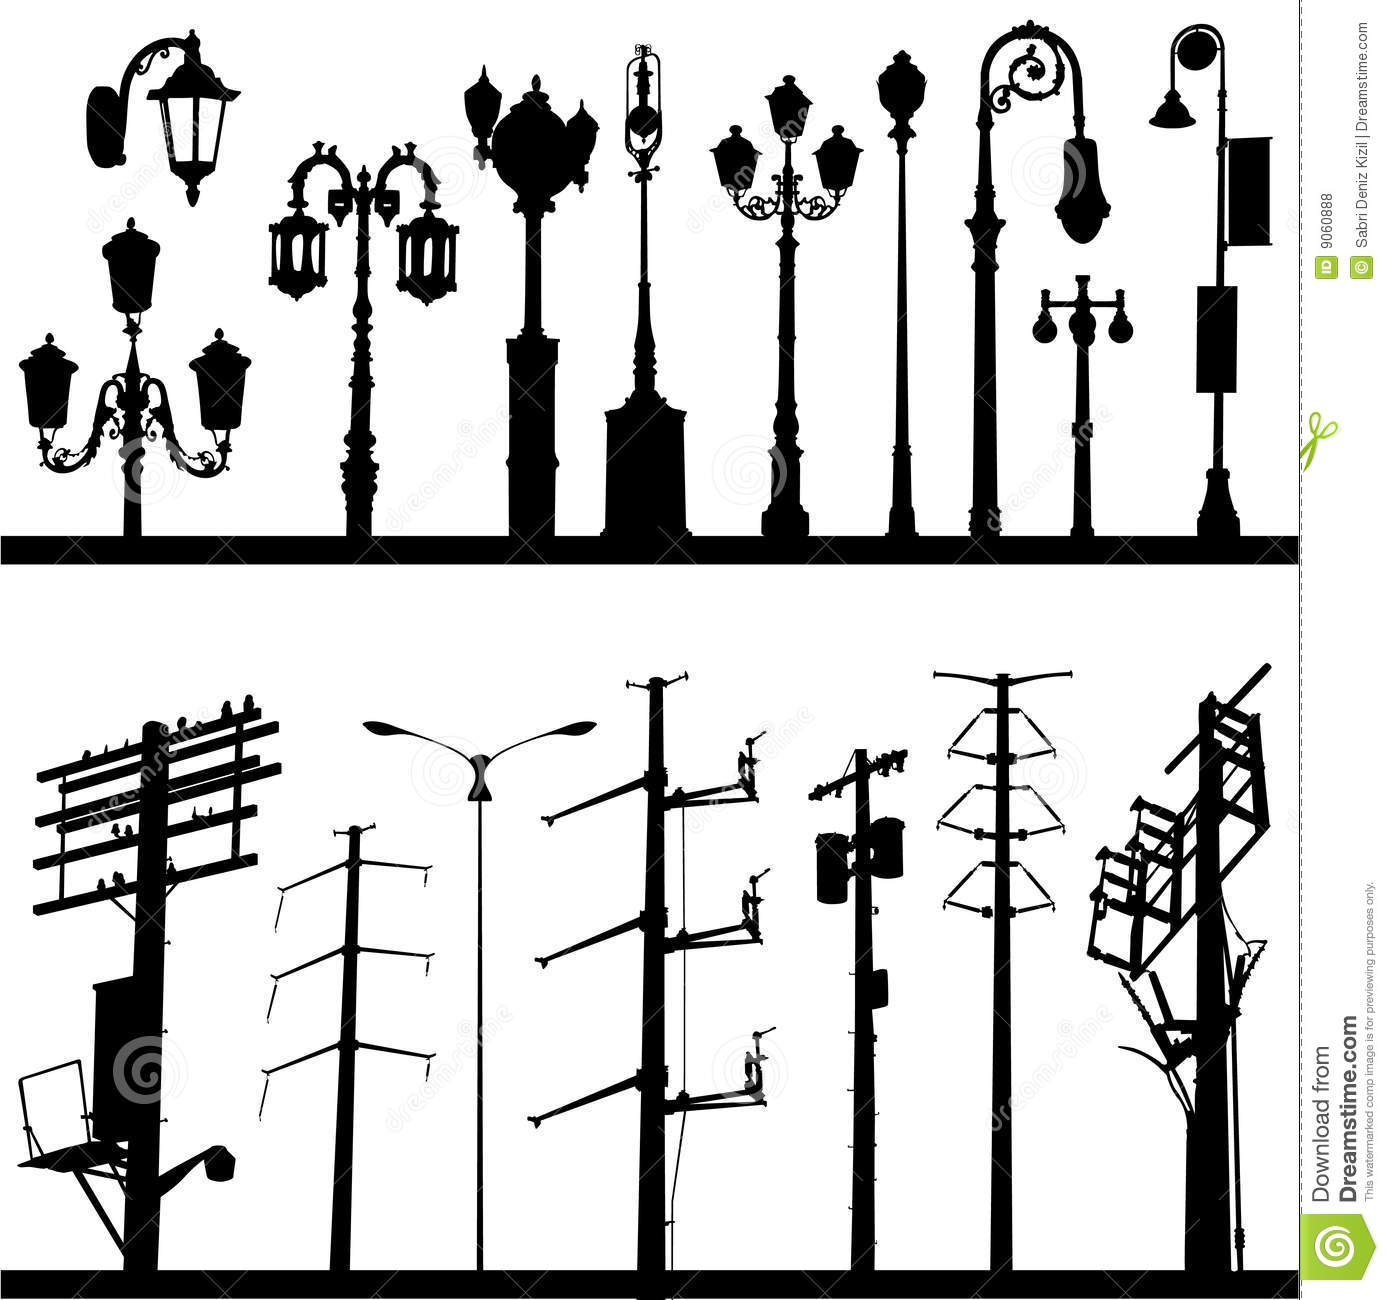 Lampadaire Exterieur Outdoor Power Line And Lamppost Vector Stock Vector - Image: 9060888